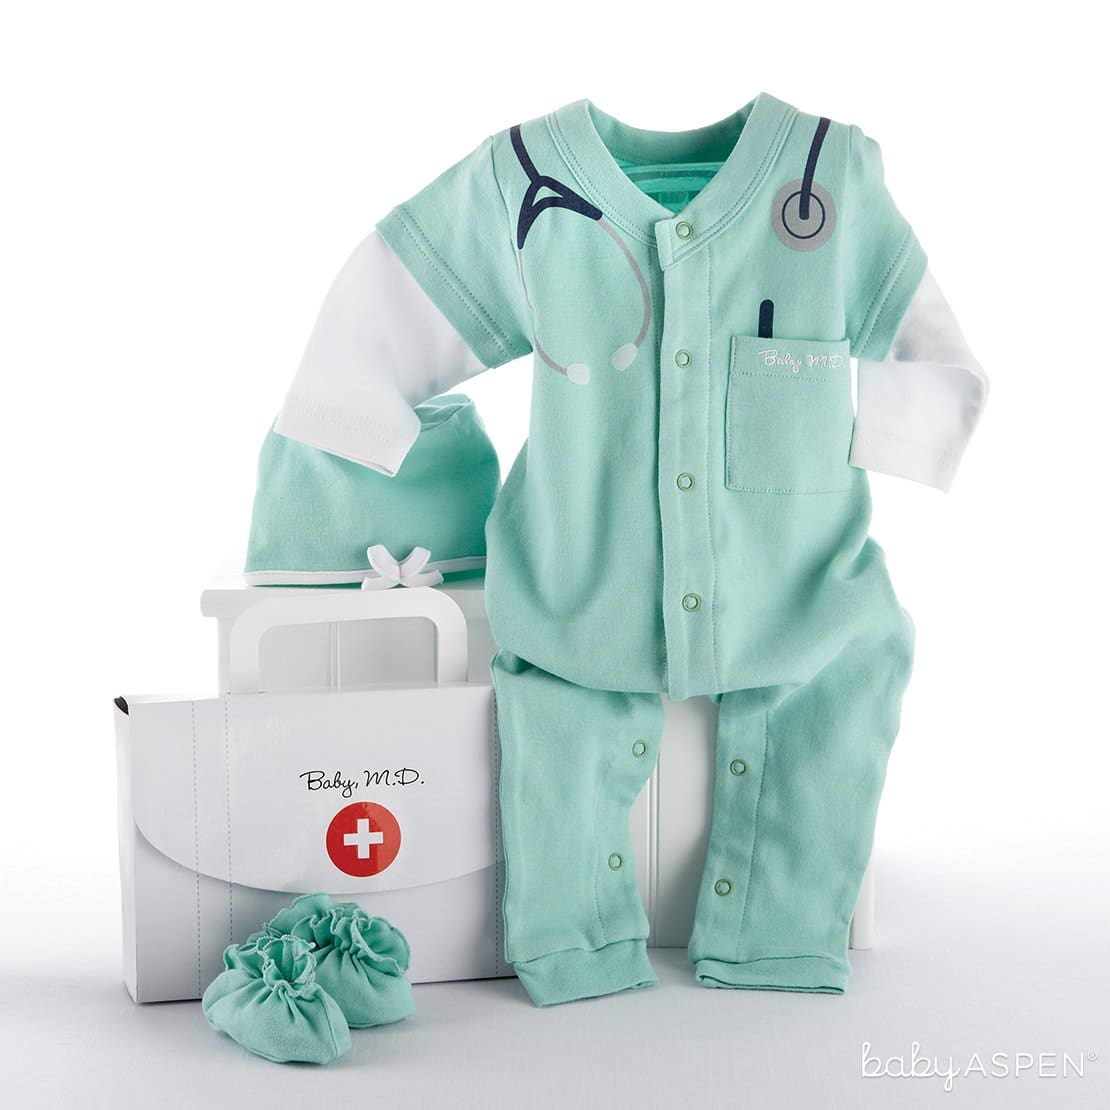 Baby M.D. 3 Piece Layette Set